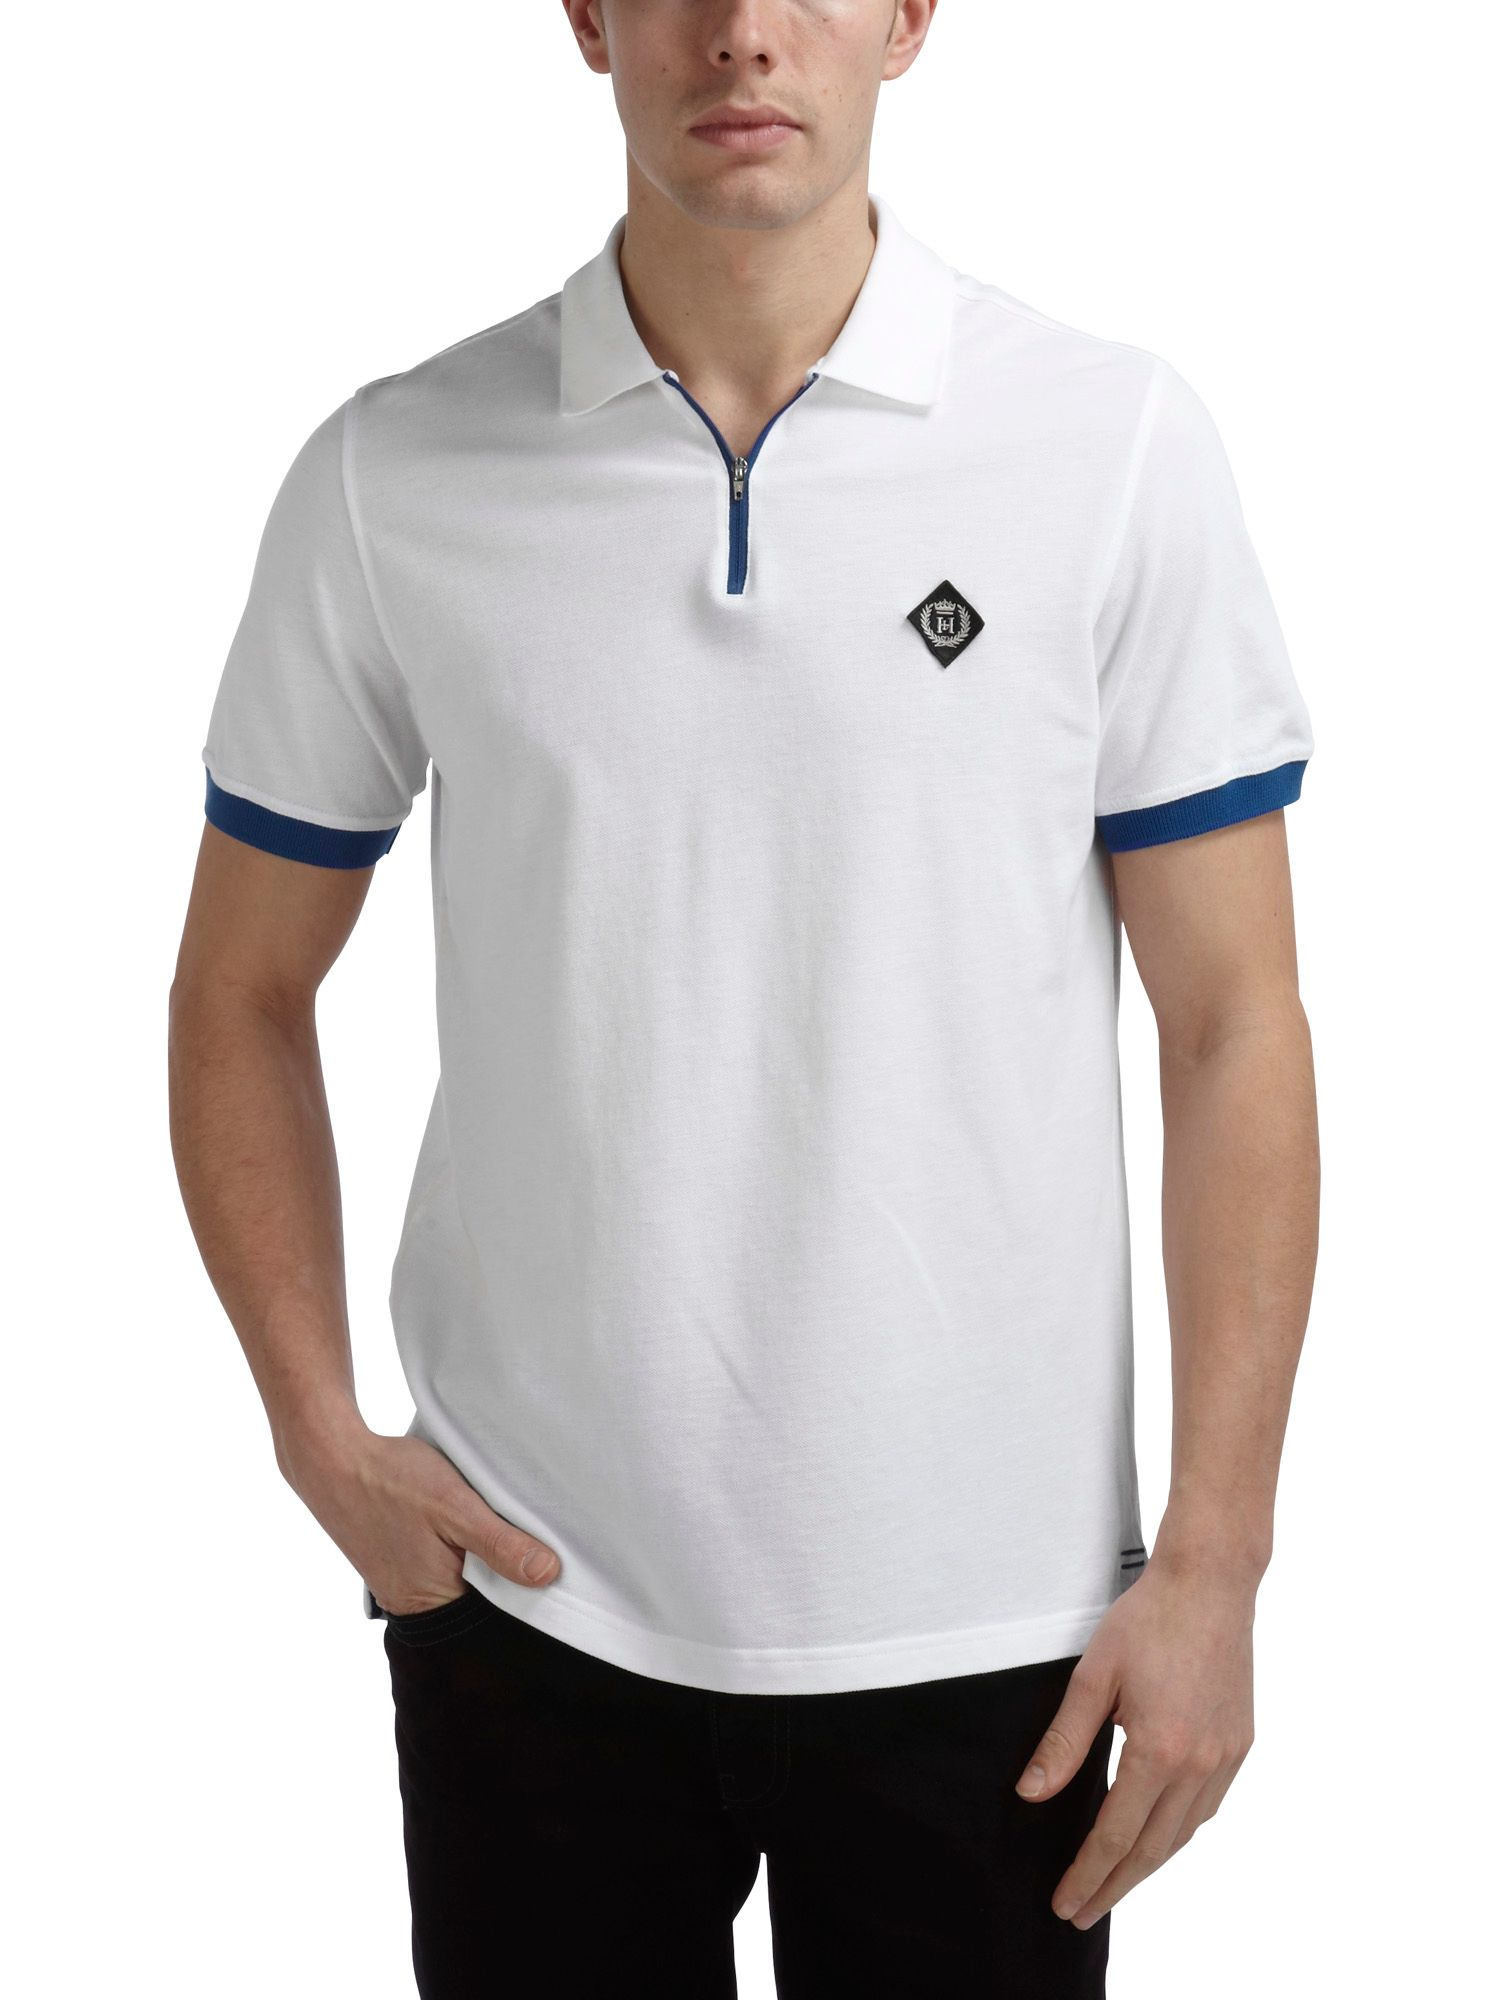 Finn regular polo